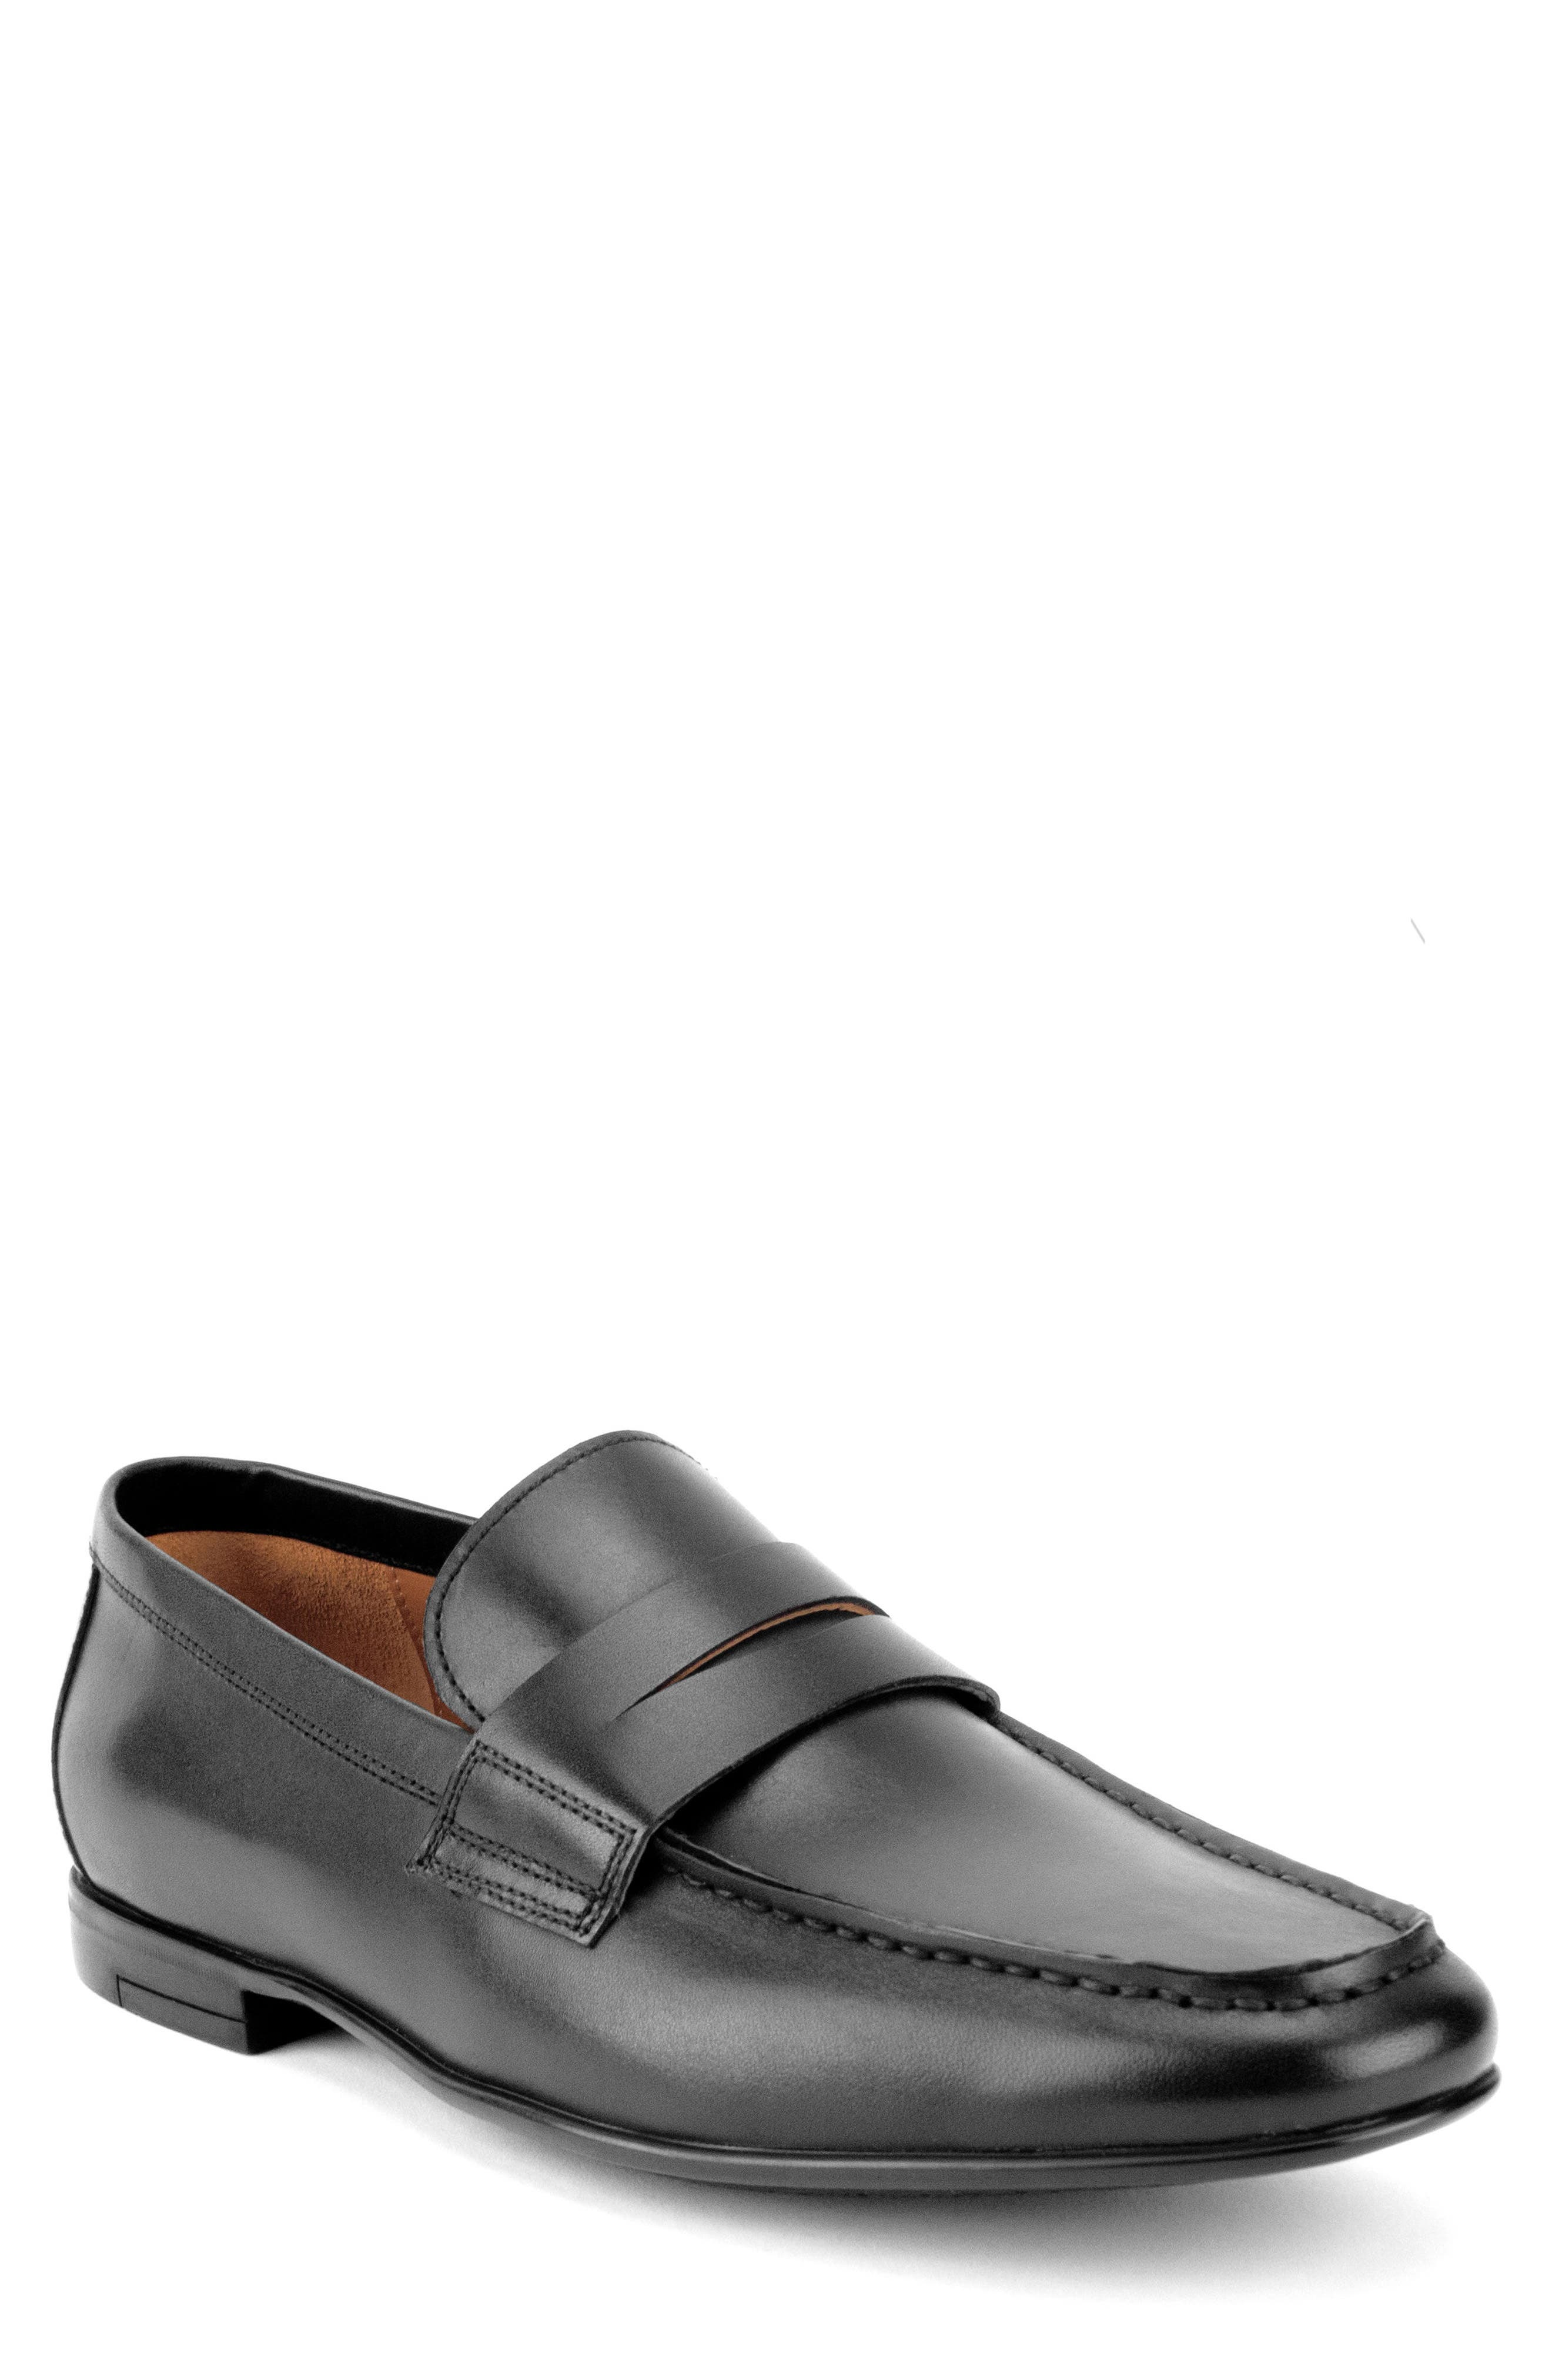 Connery Penny Loafer,                         Main,                         color, BLACK LEATHER